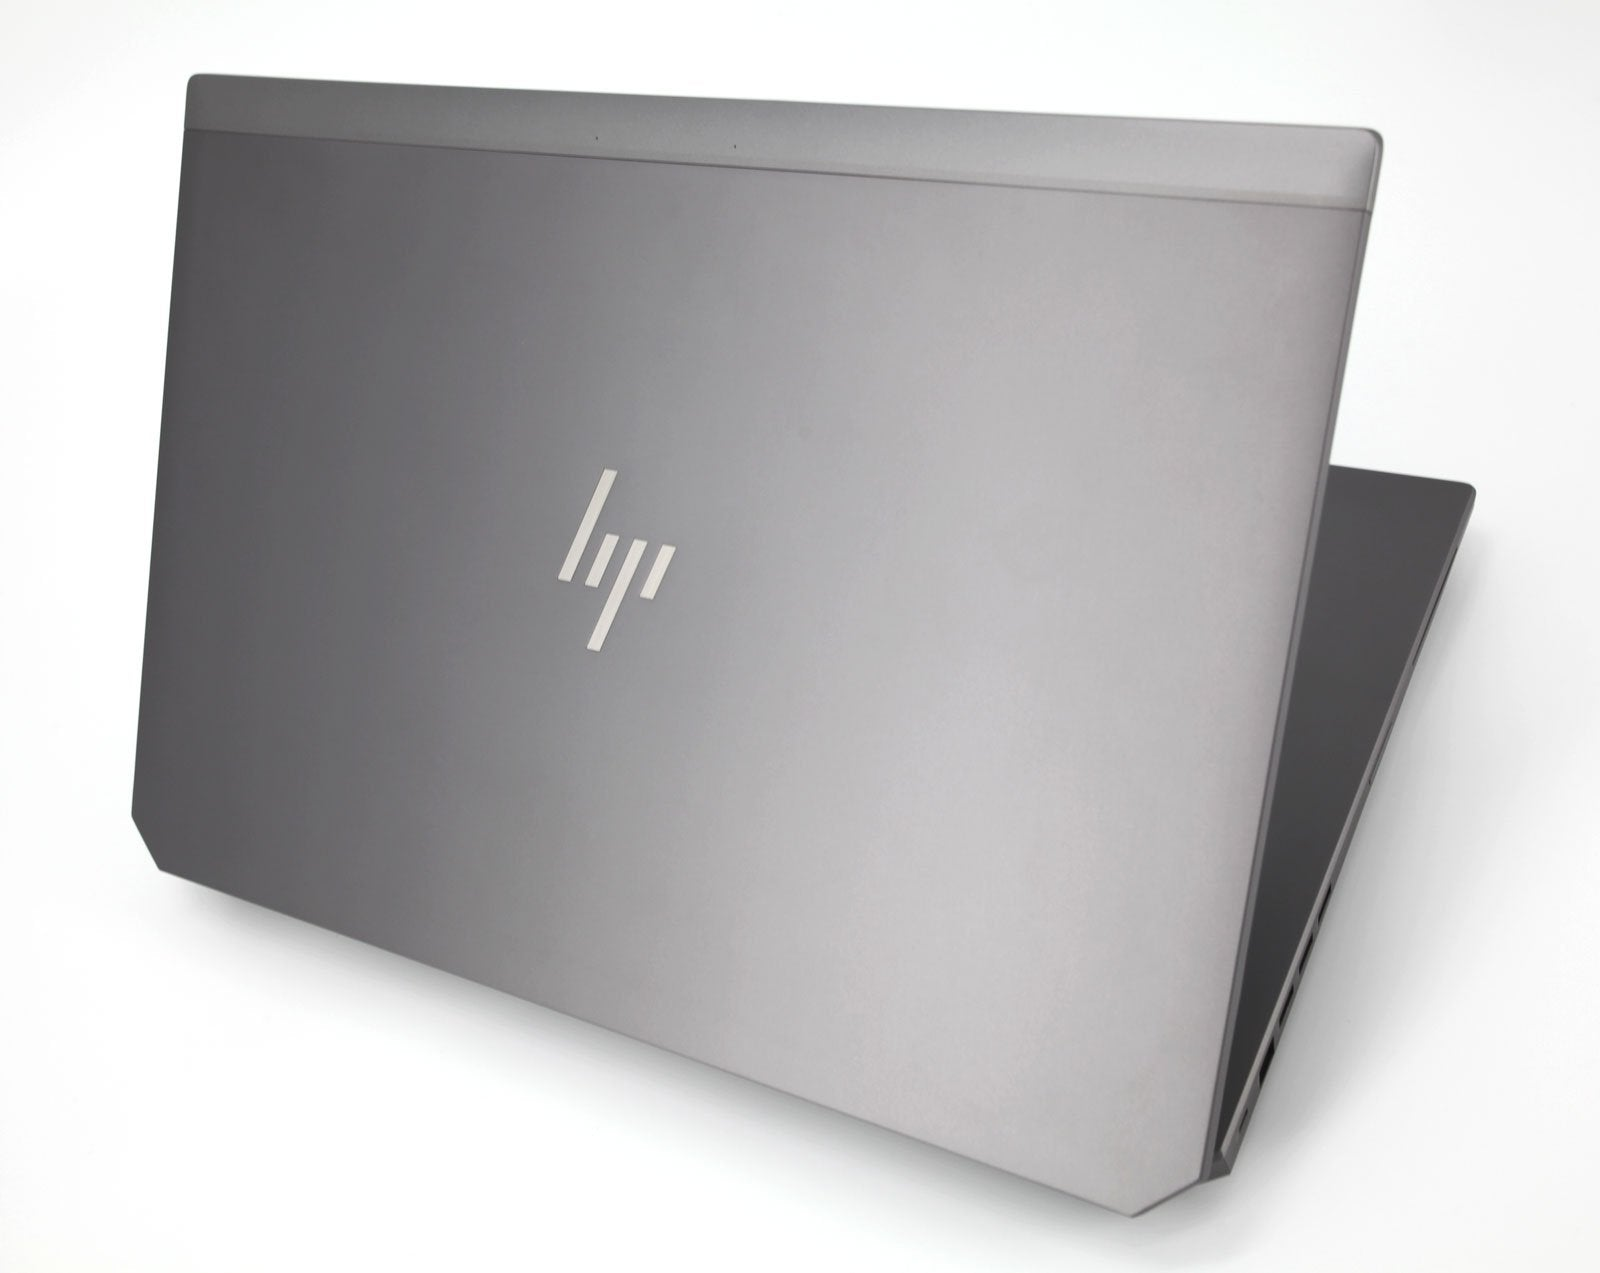 HP ZBook 17 G6 4K Laptop: Xeon 8-Cores, RTX 3000, 32GB RAM, 512GB, Warranty - CruiseTech